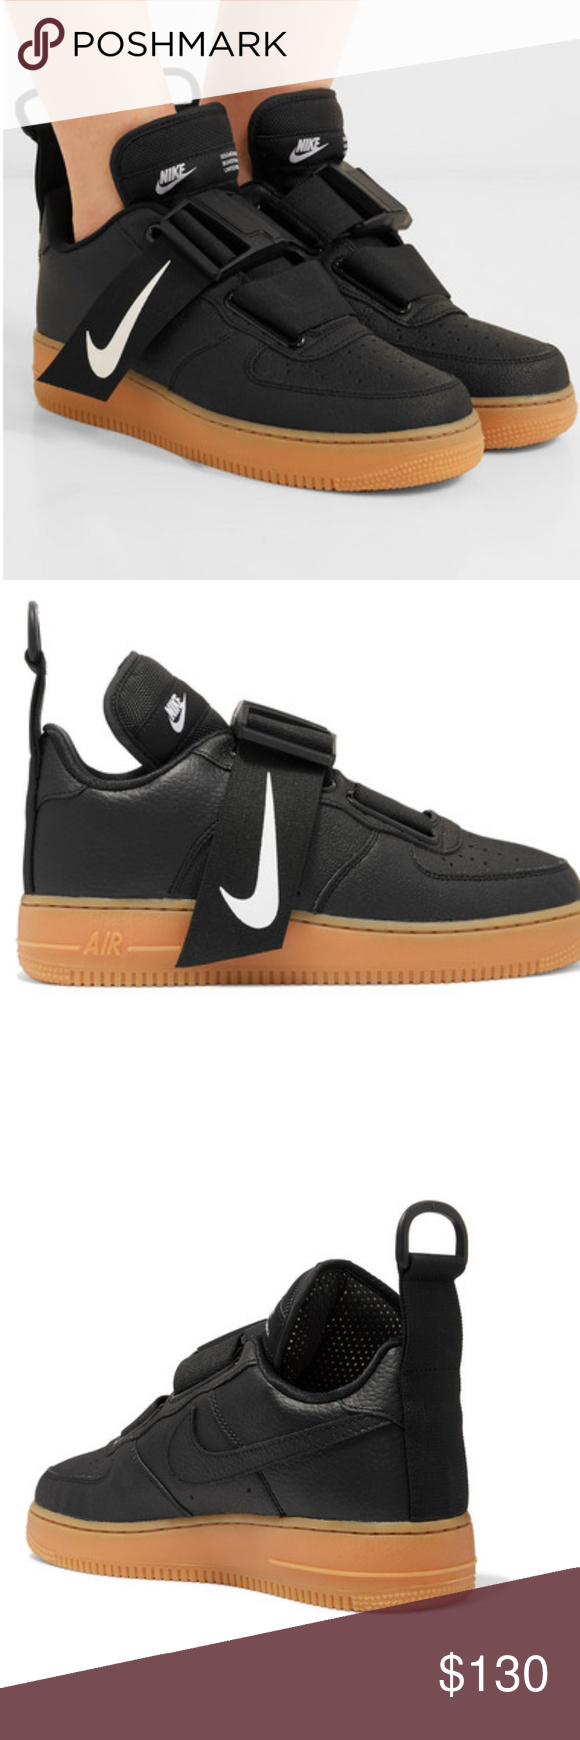 air force 1 utility true to size